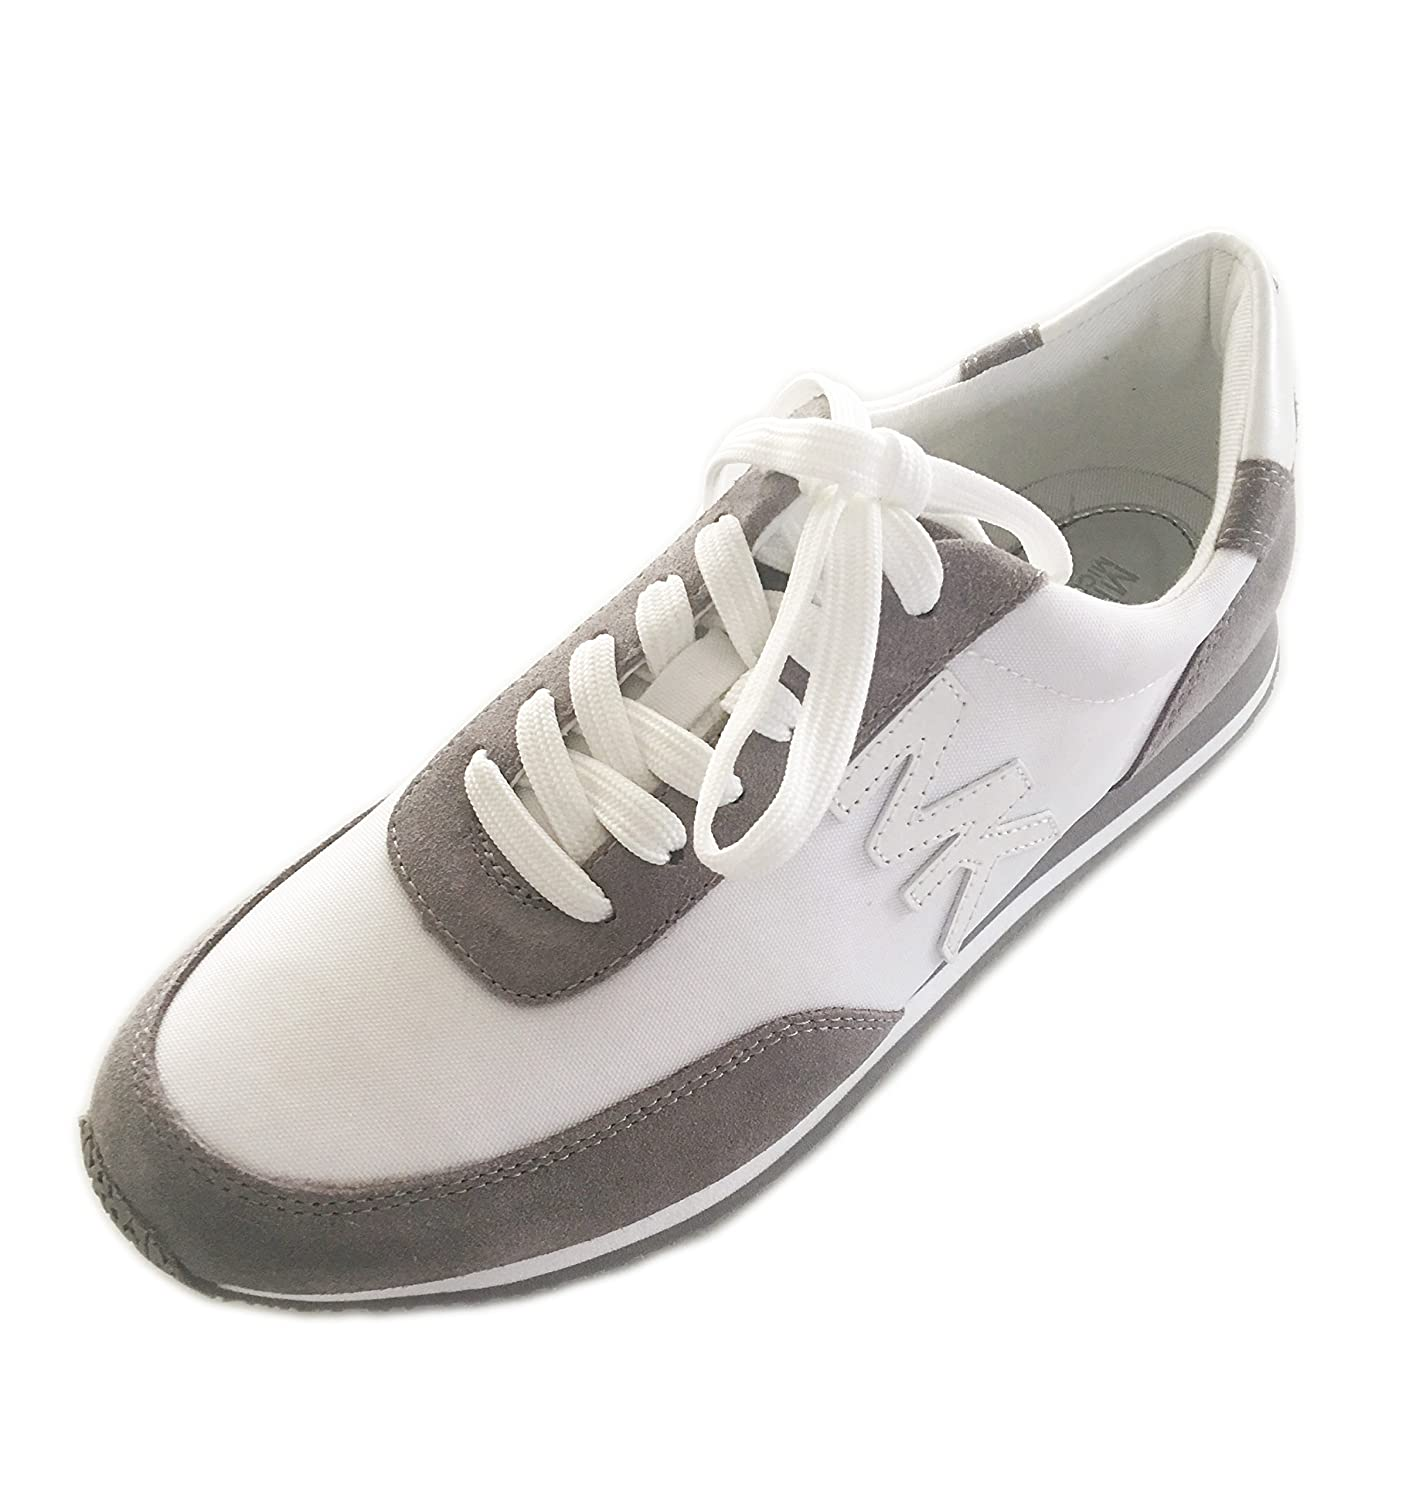 54c6aa74f7b6 Michael Kors Women s Shoes Stanton Trainer Sneaker Leather US 8.5M ( Optic  White Grey